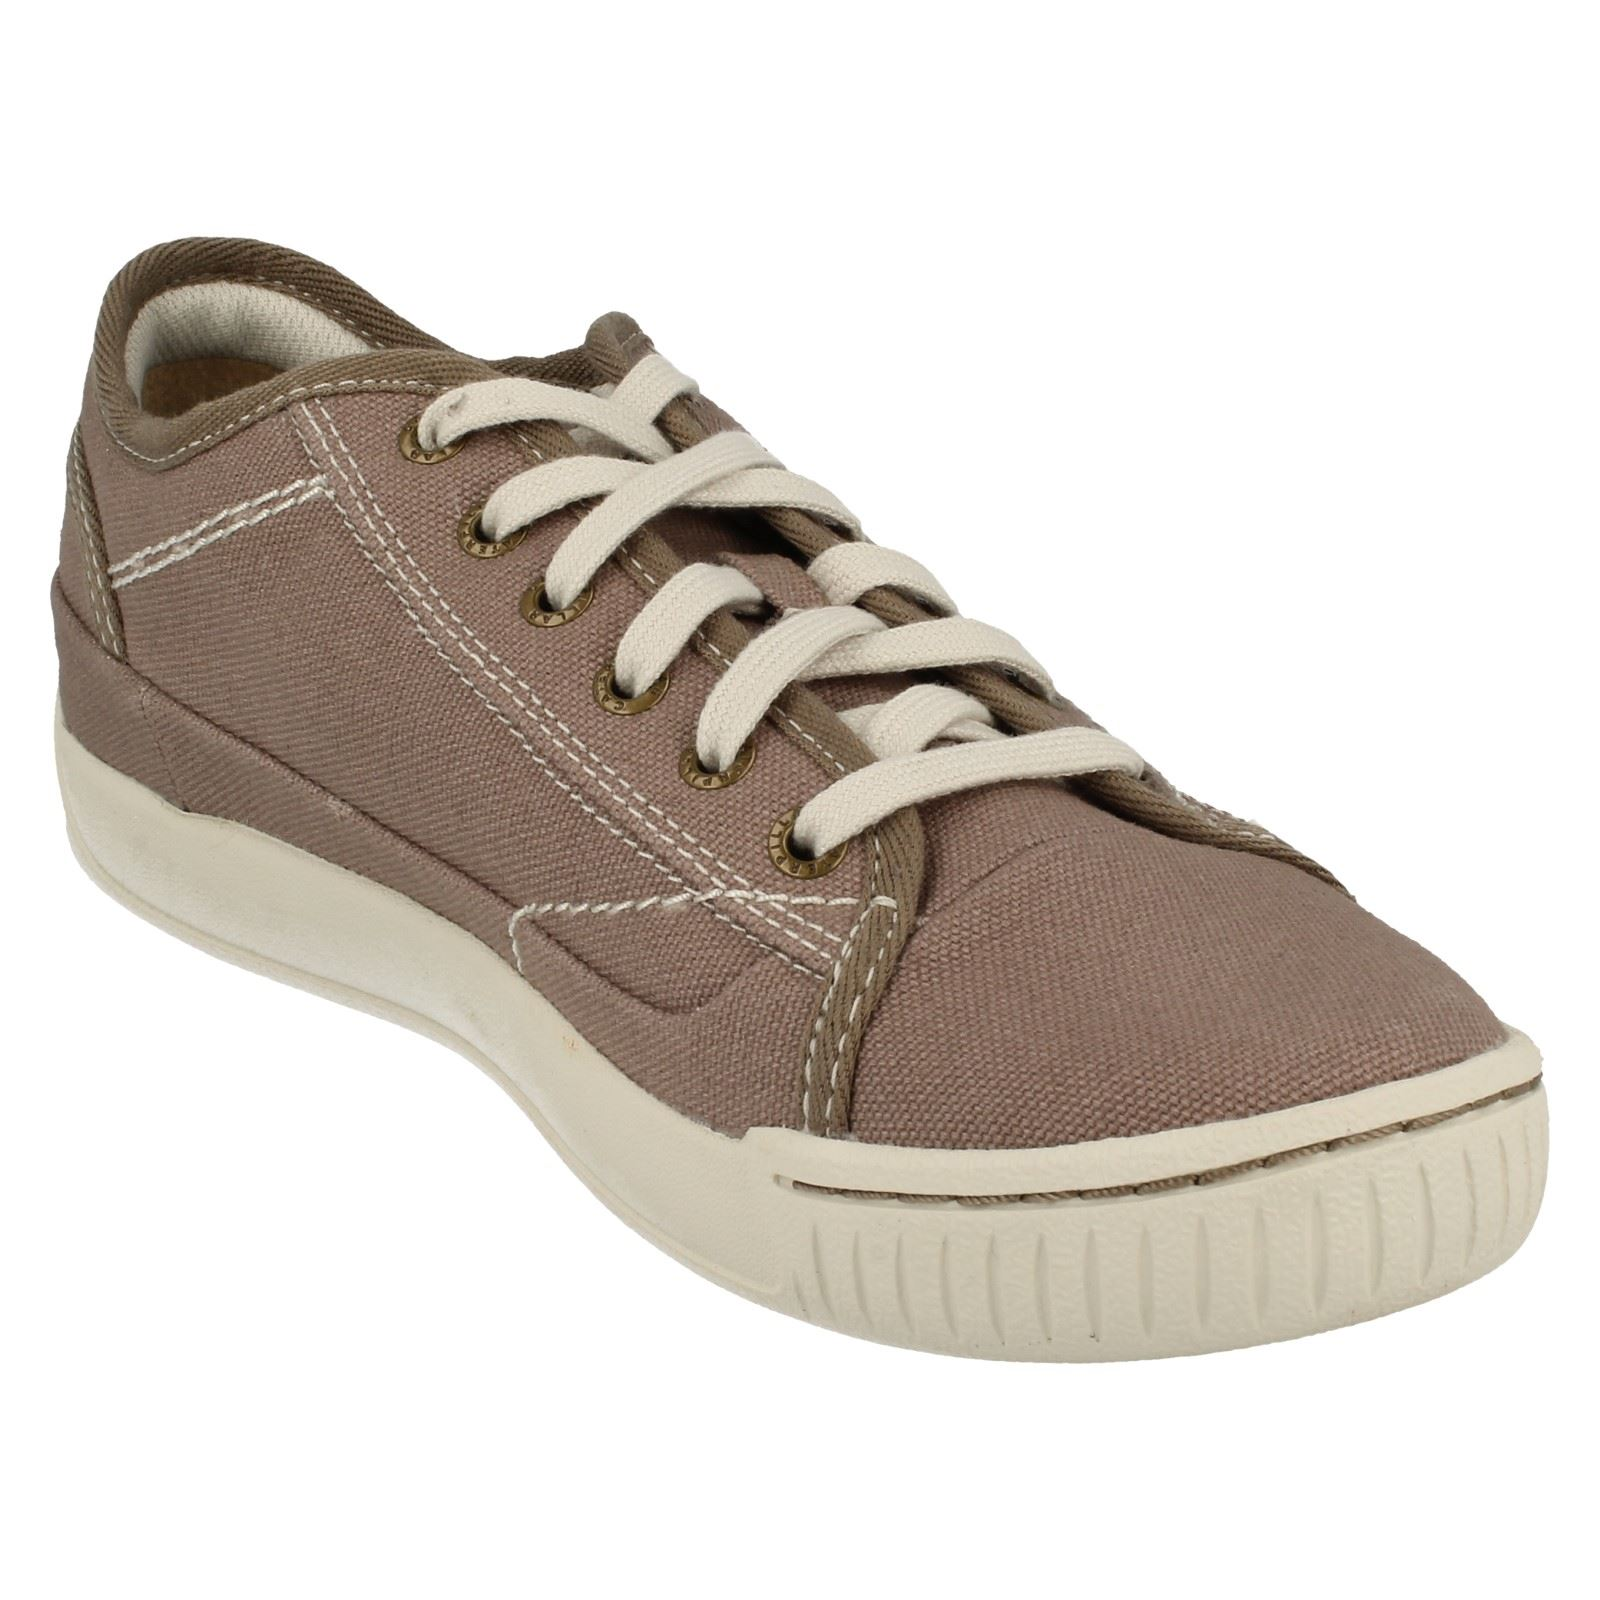 mens caterpillar casual lace up shoes intro canvas ebay